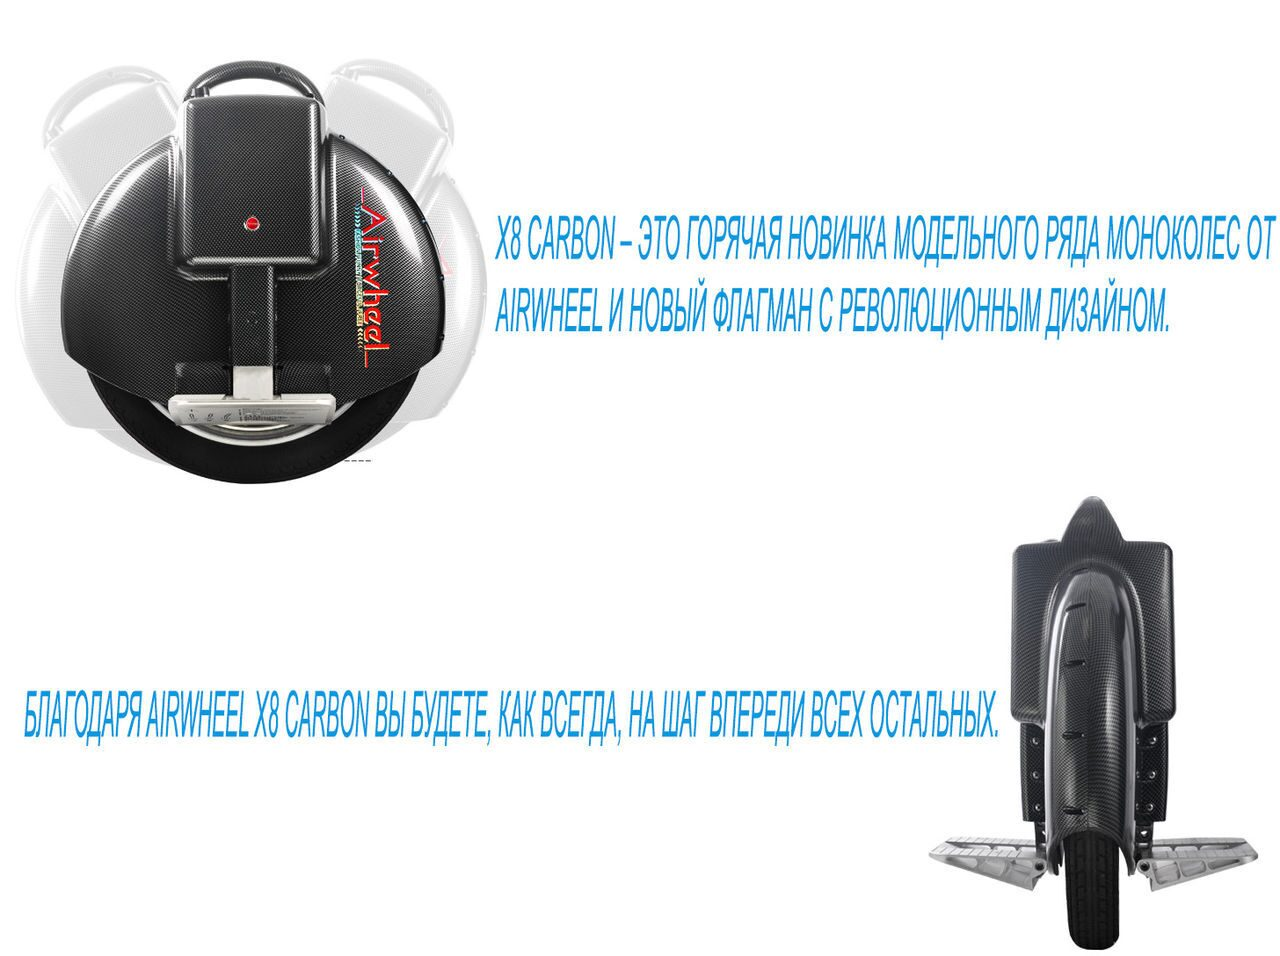 airwheel x8 фото моноколеса